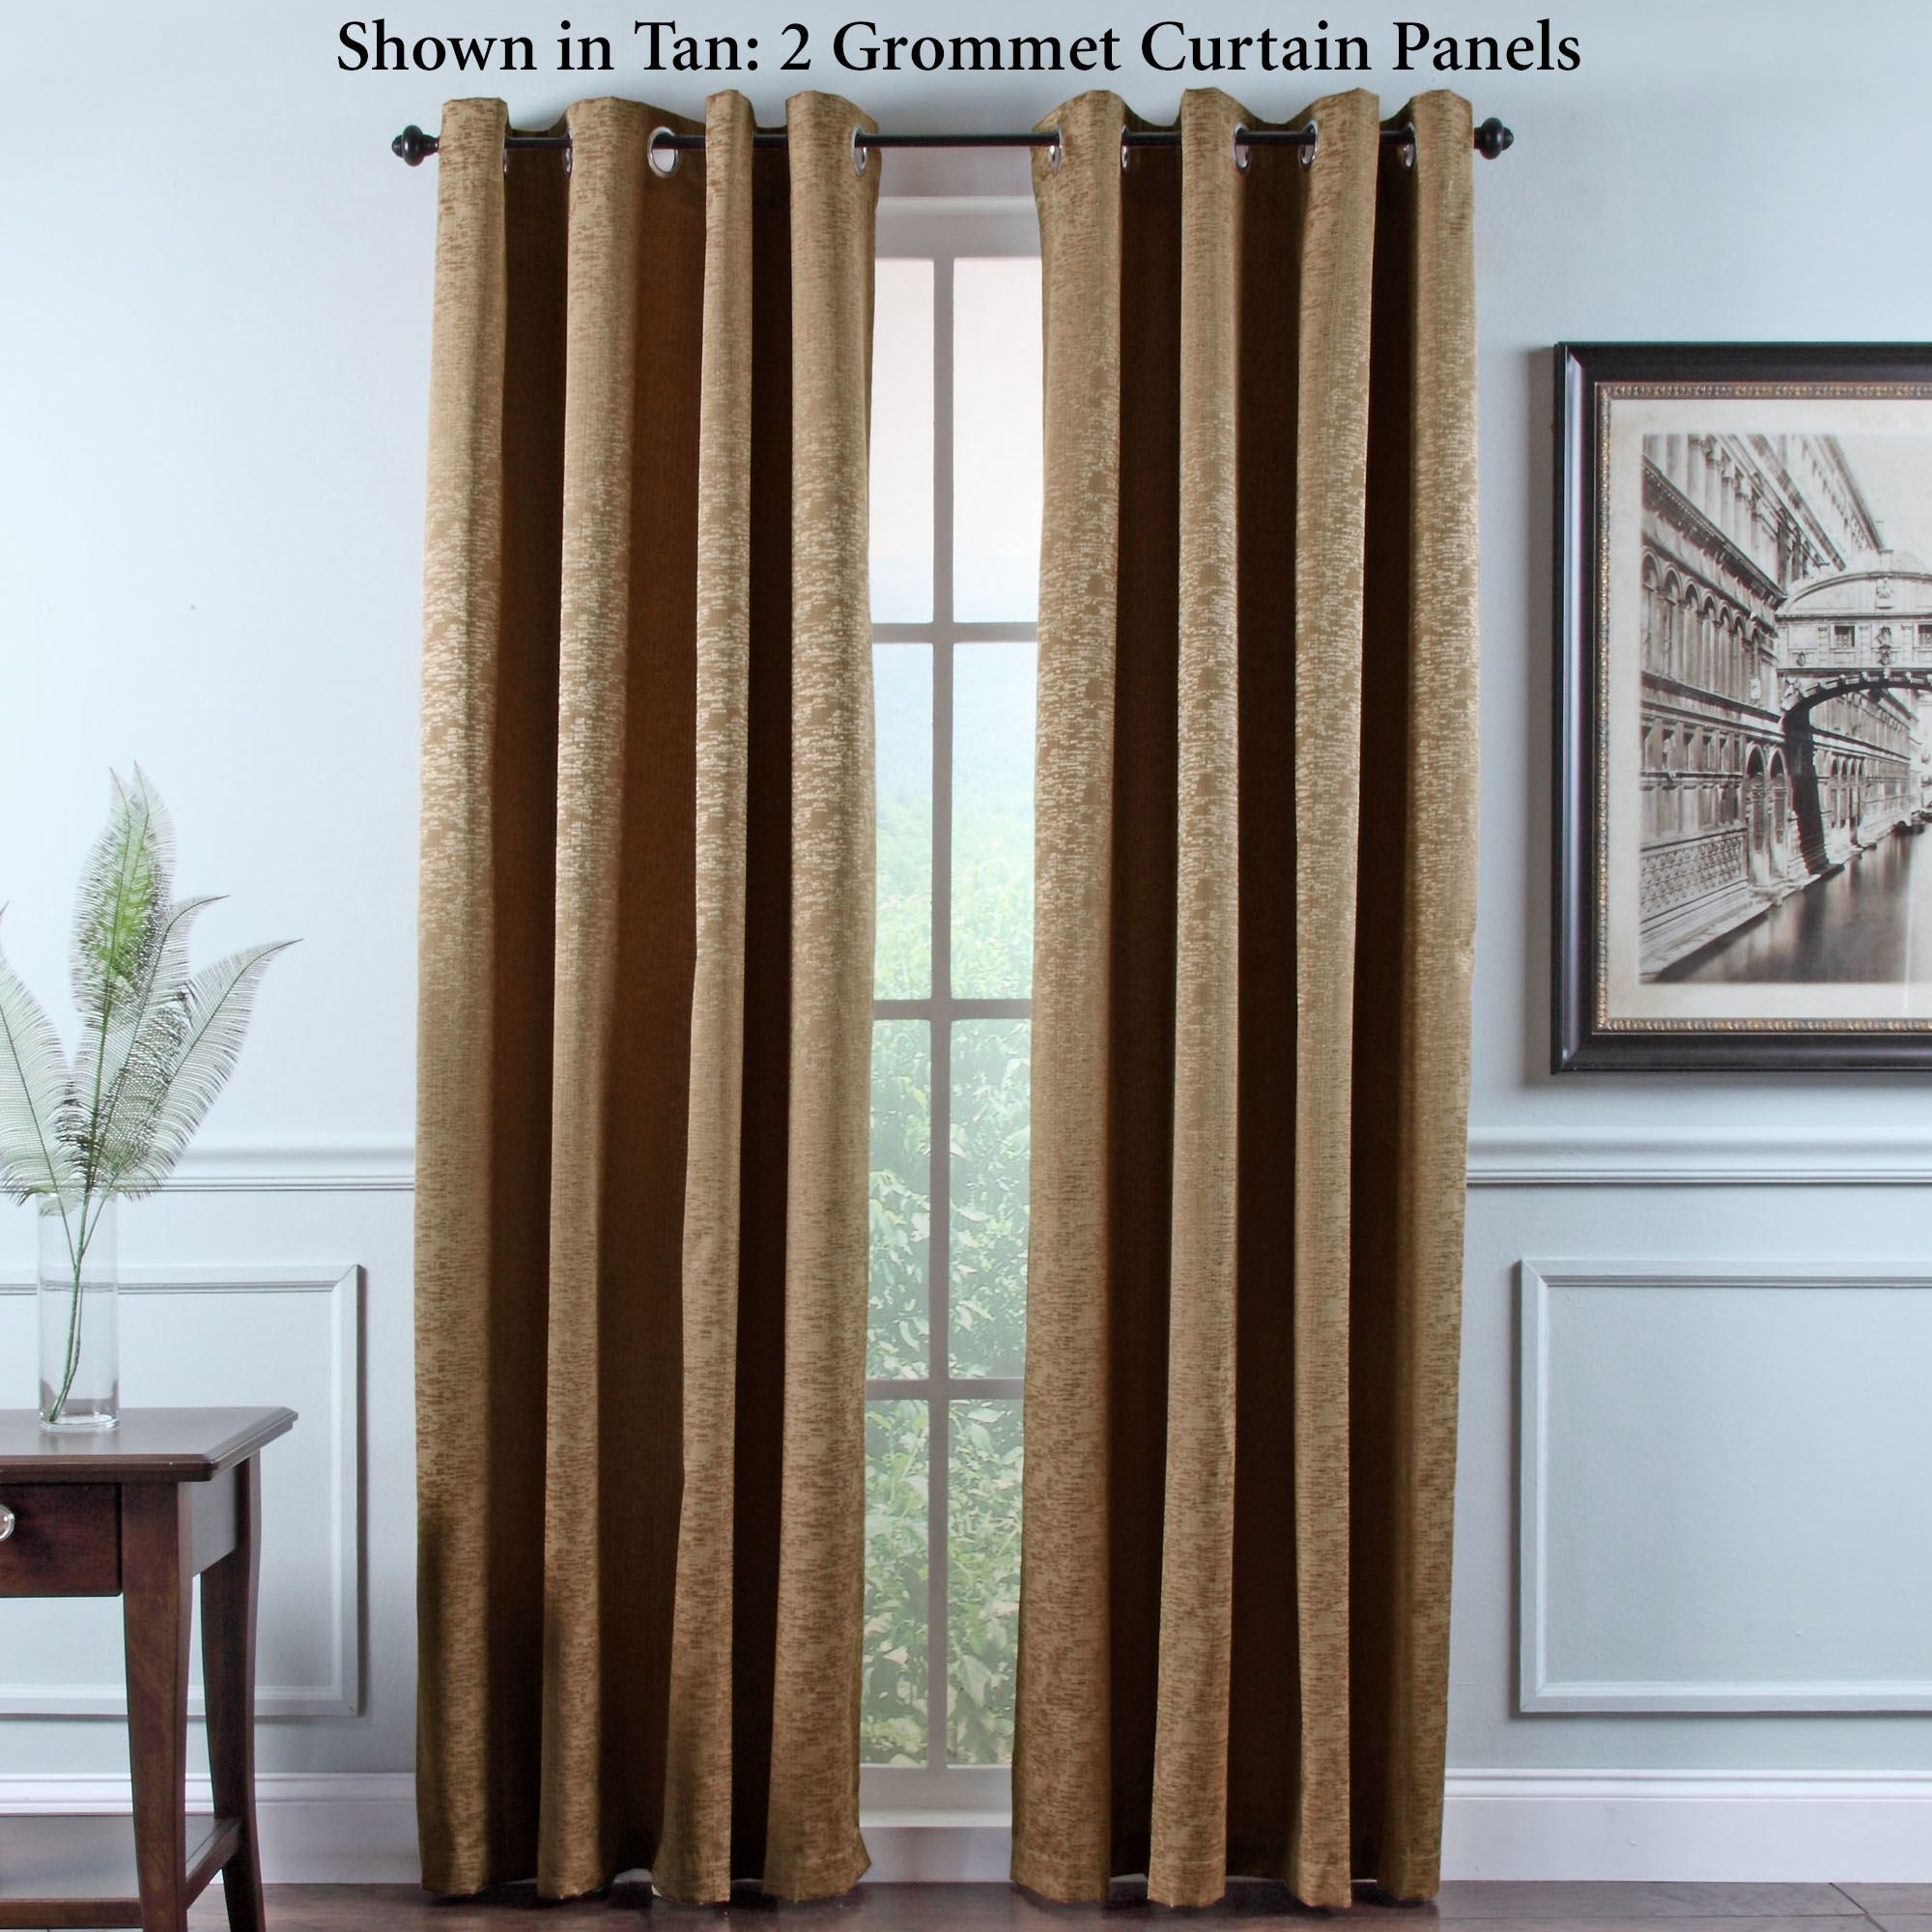 greeniteconomicsummit back l ideas furniture classy curtains white decorative drapes org tab linen